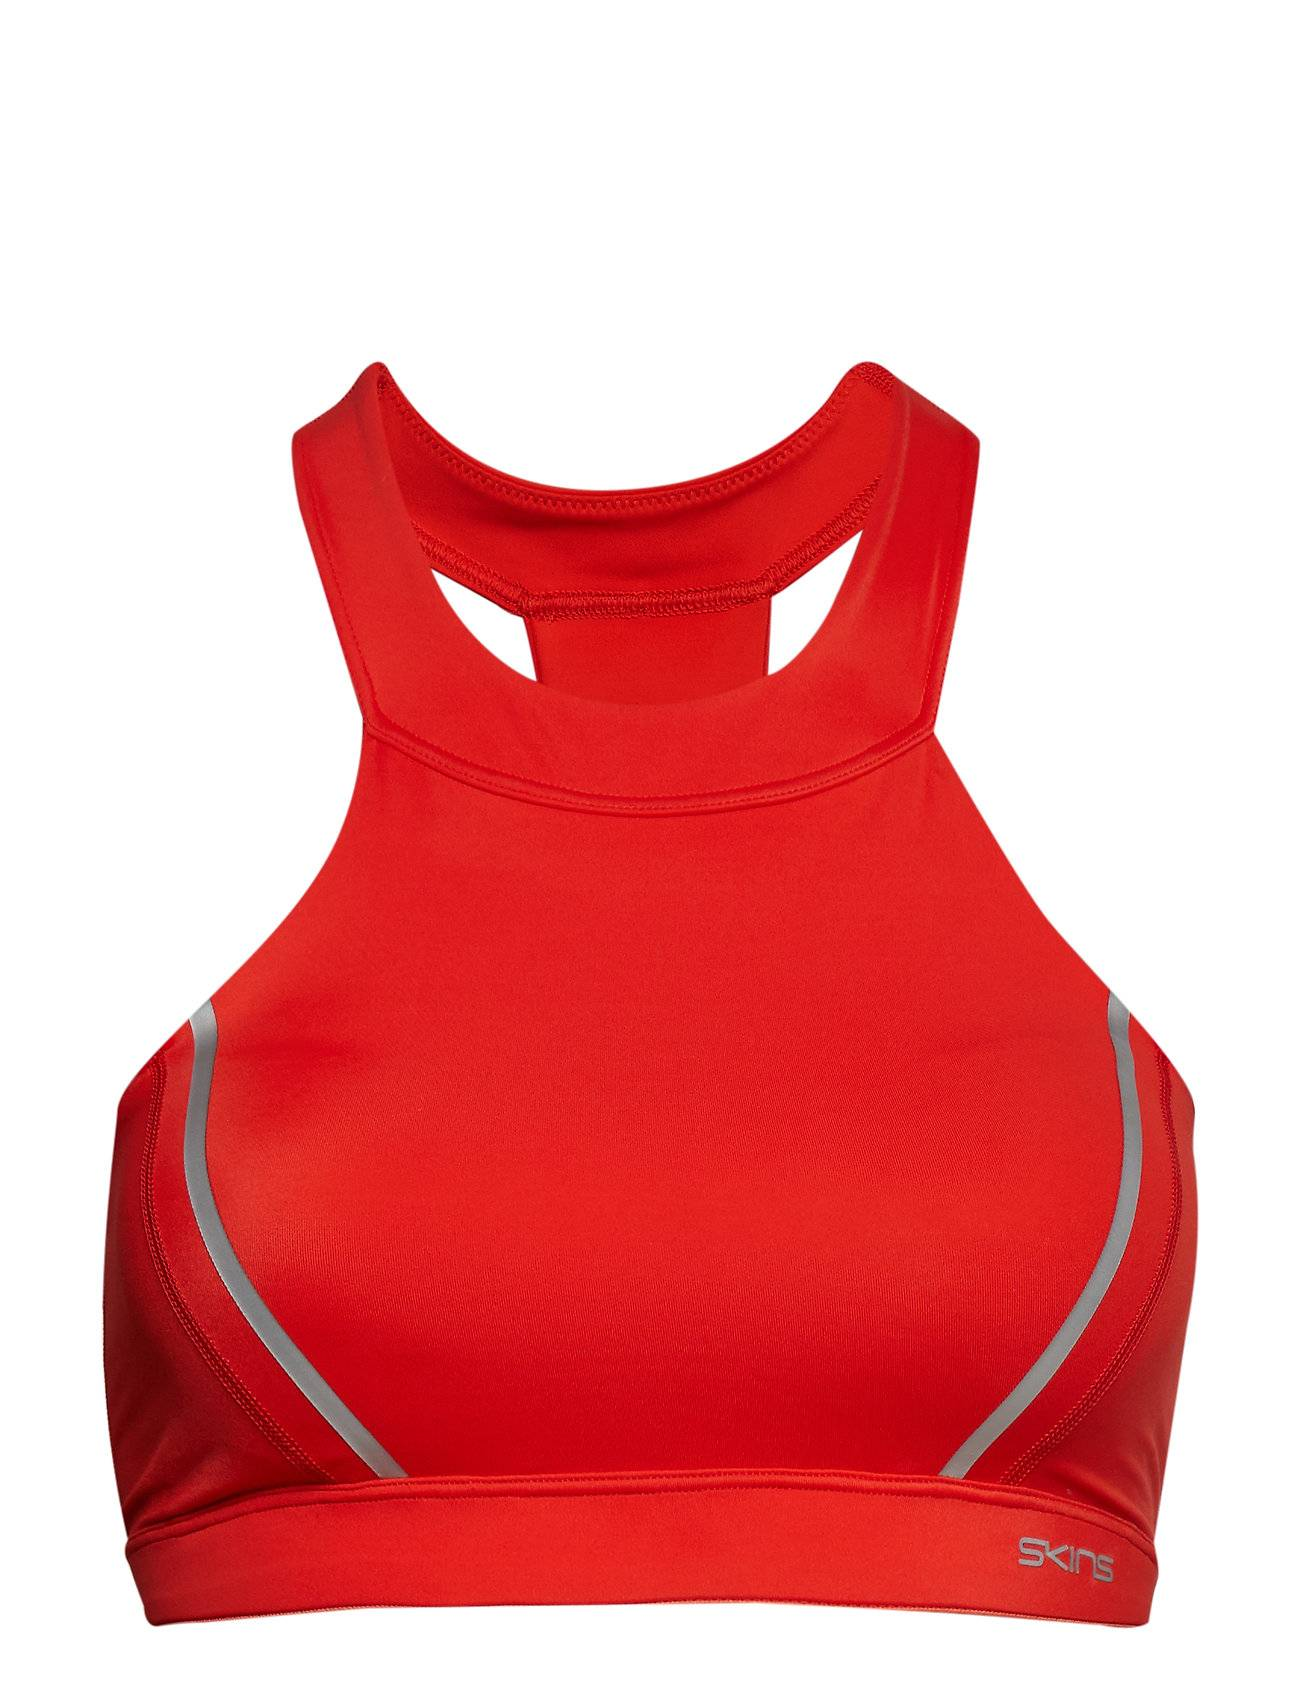 Skins Dnamic Speed Womens Sports Bra Lingerie Bras & Tops Sports Bras - ALL Punainen Skins